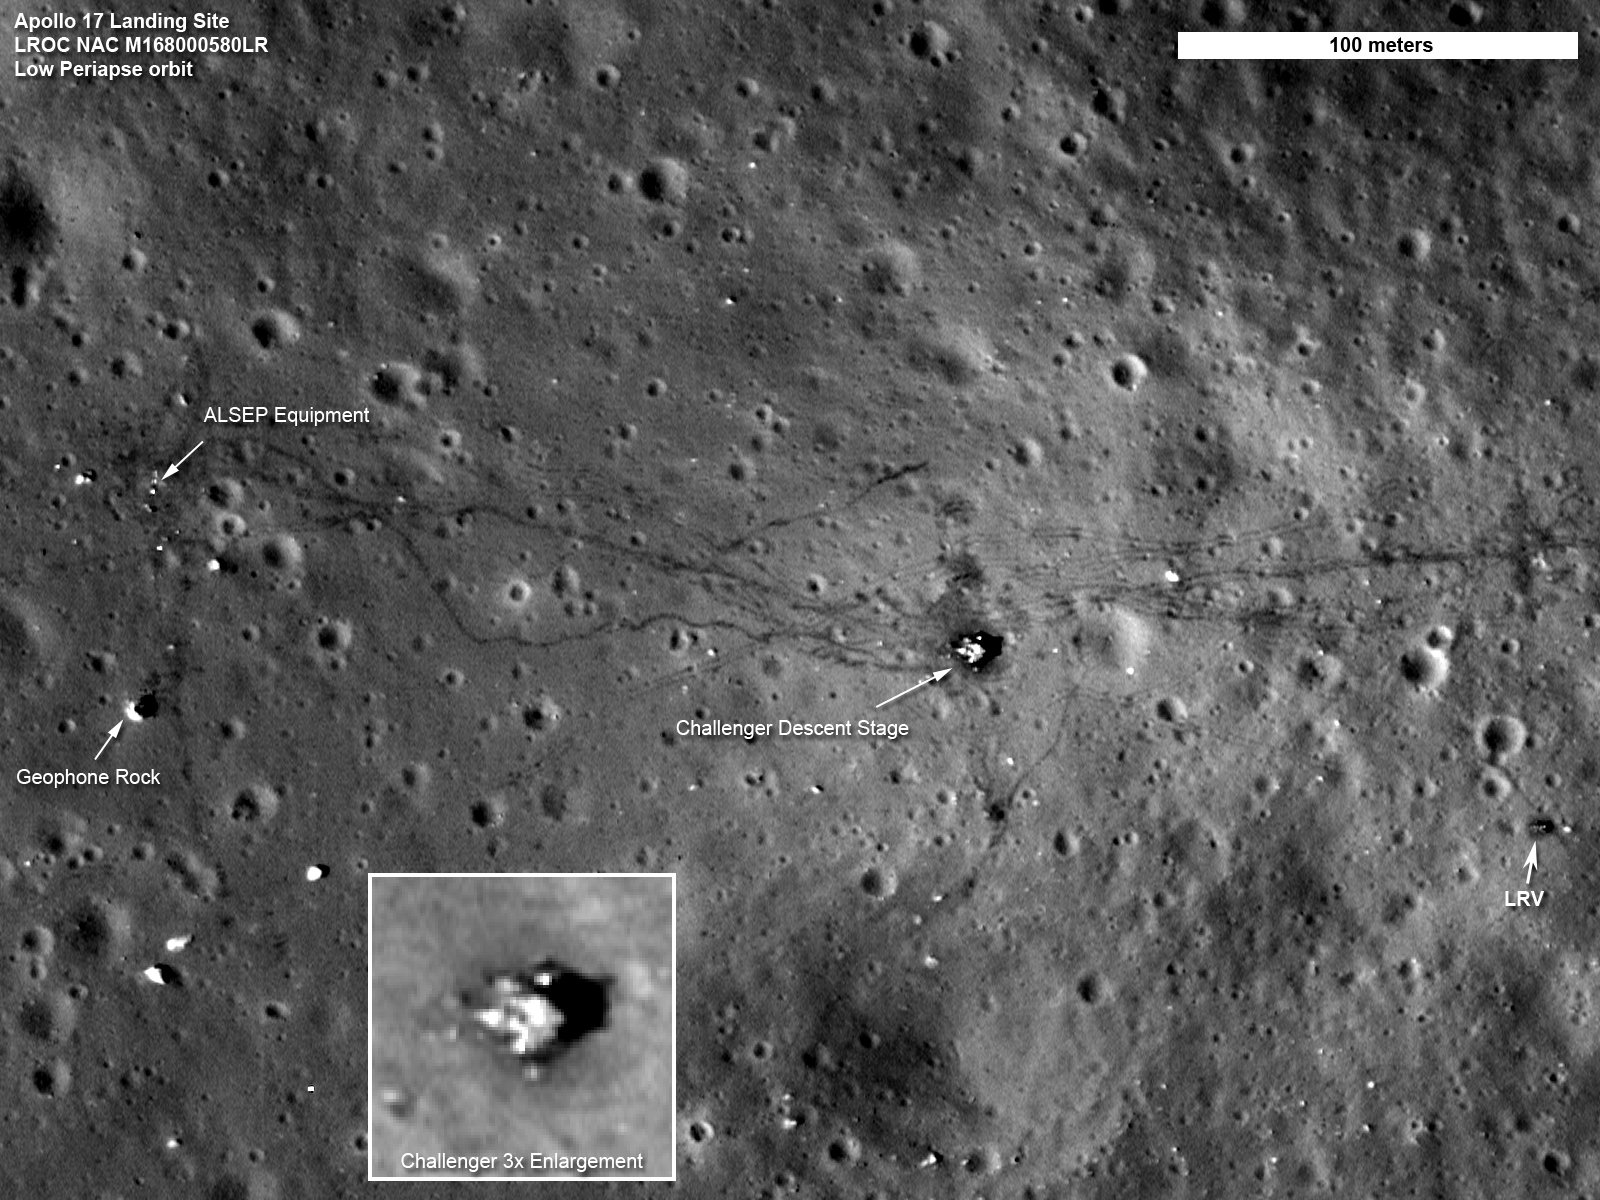 The landing site of the apollo 17 mission as photographed in 2011